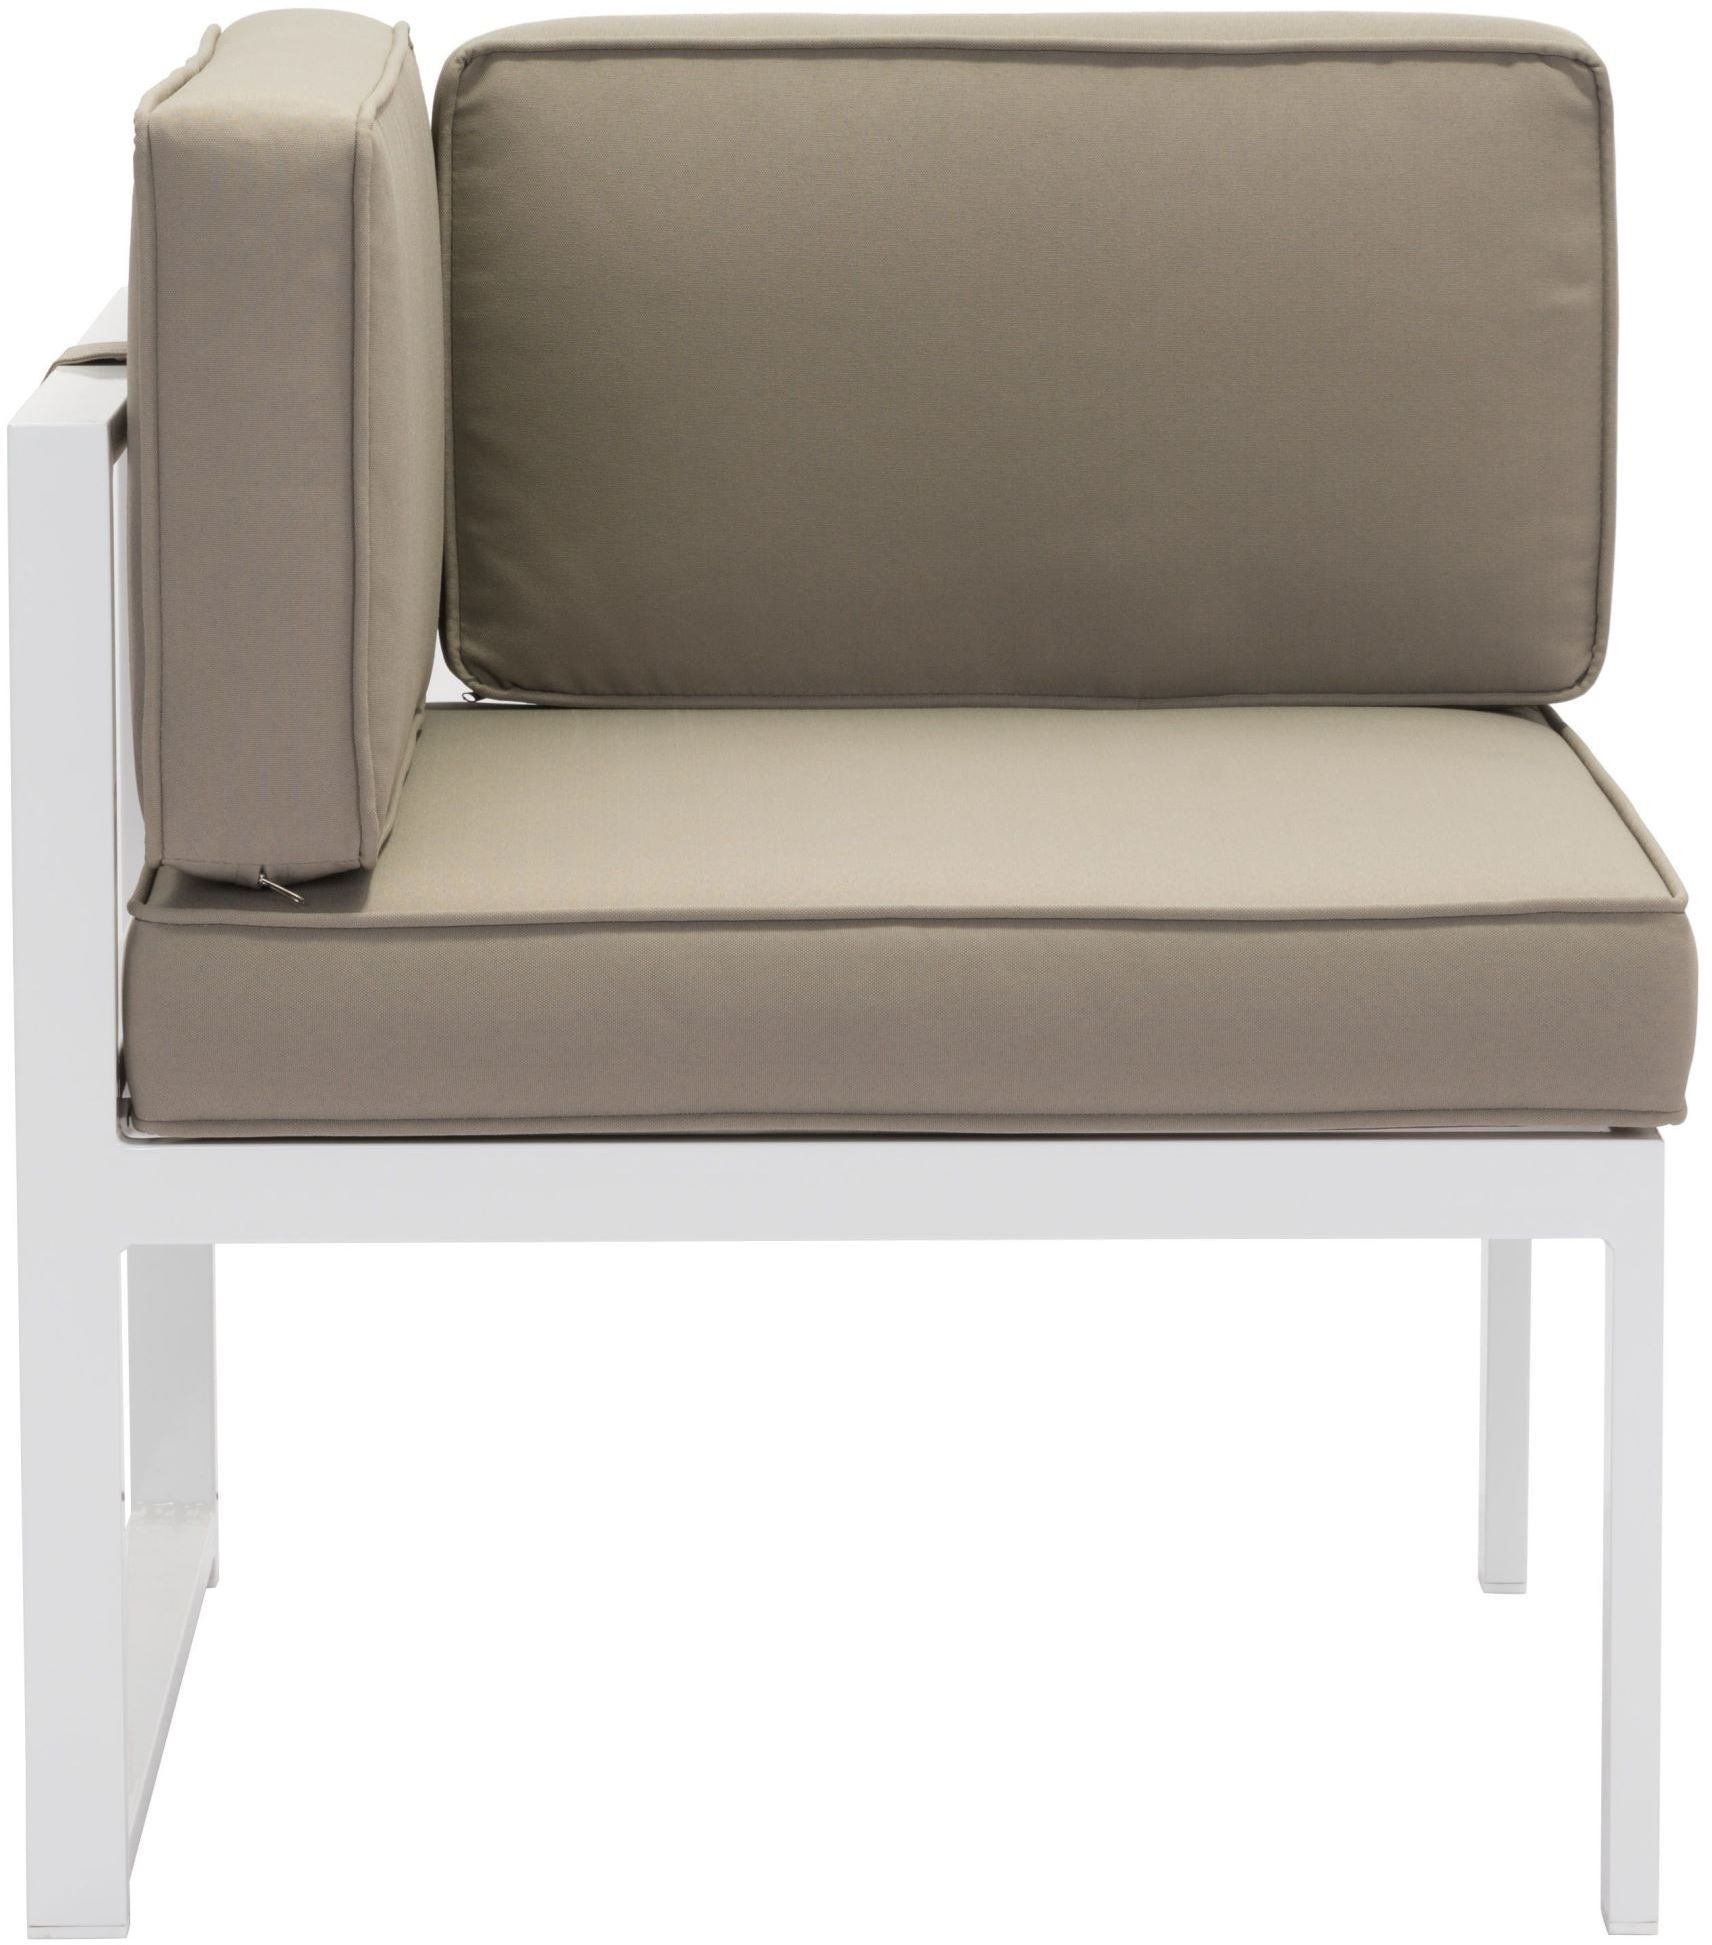 Golden Beach White and Taupe Sectional from Zuo